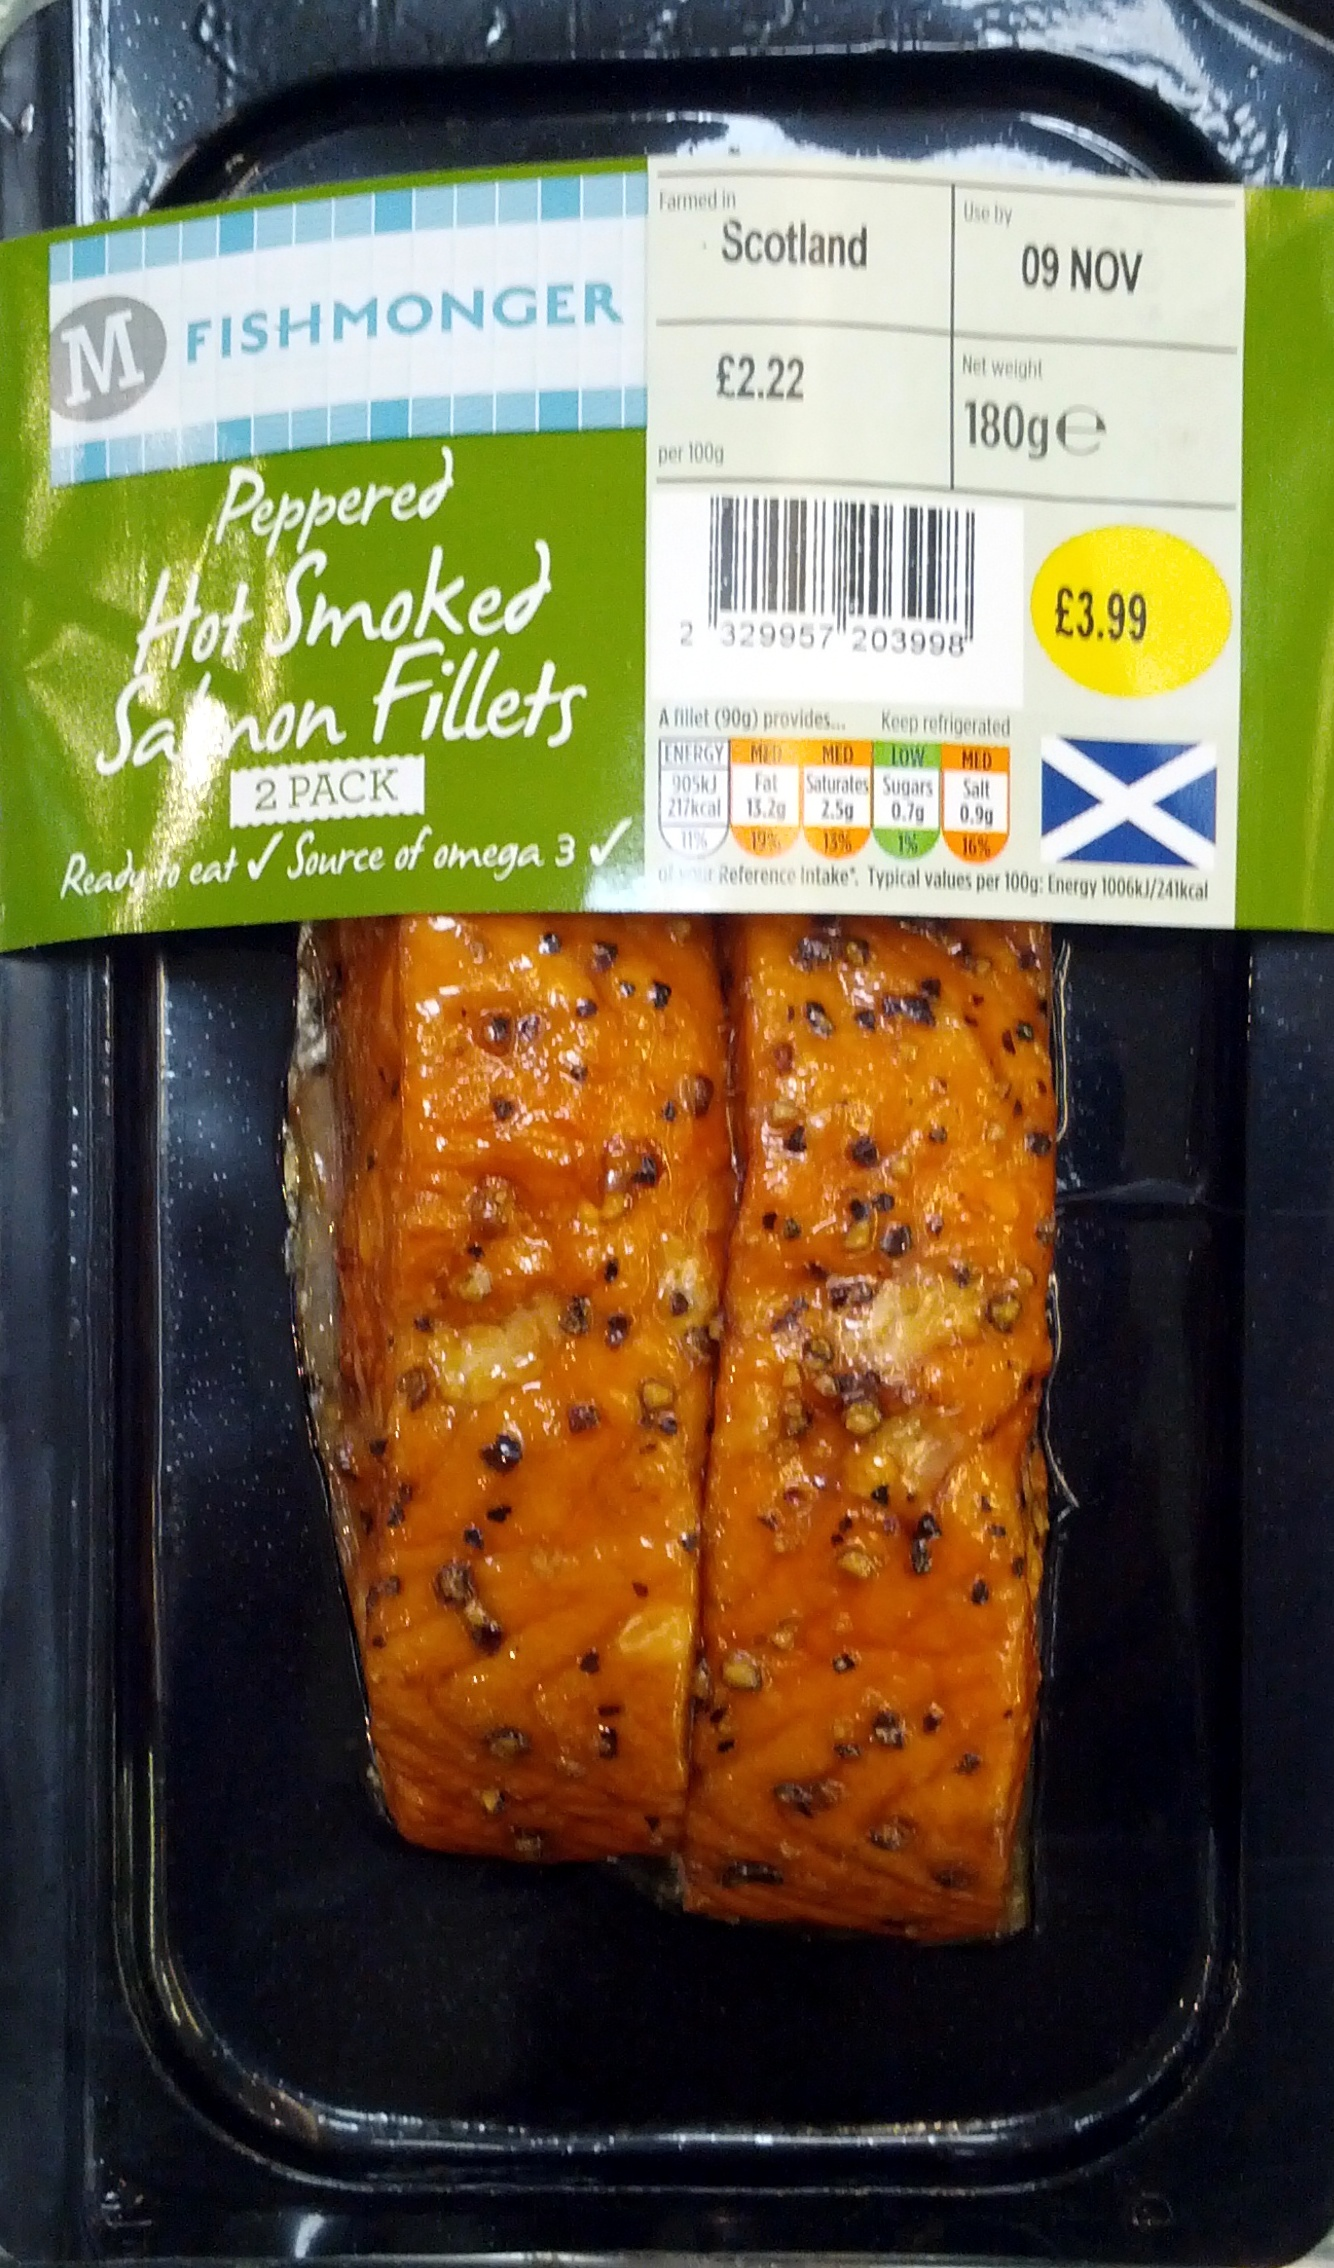 Peppered Hot Smoked Salmon Fillets Morrisons 180g